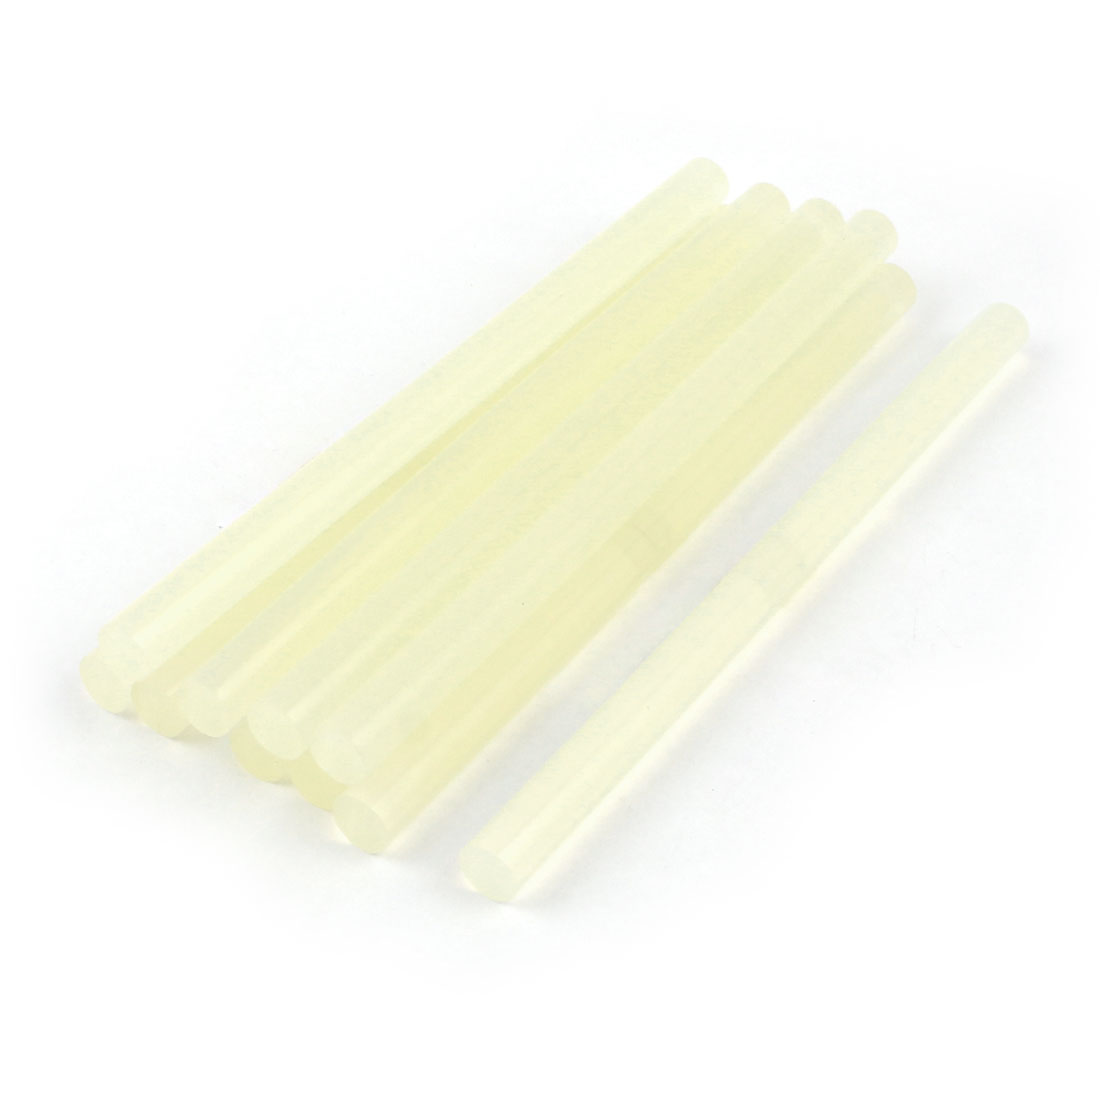 10 Pieces Clear White Hot Melt EVA Glue Adhesive Stick 11mm x180mm